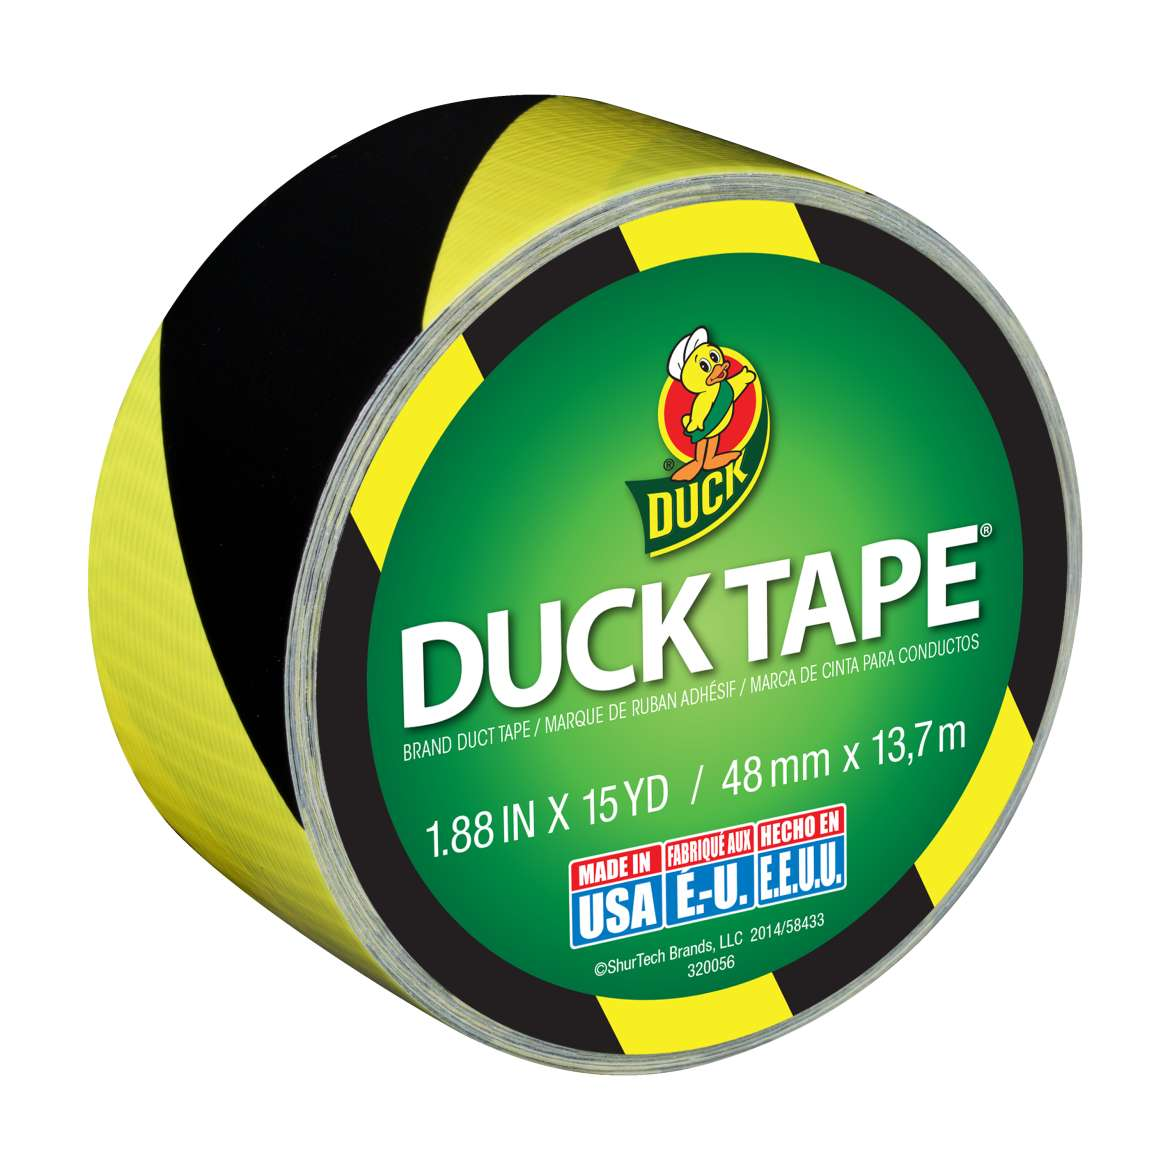 Printed Duck Tape® Brand Duct Tape - Black & Yellow Stripes, 1.88 in. x 15 yd. Image